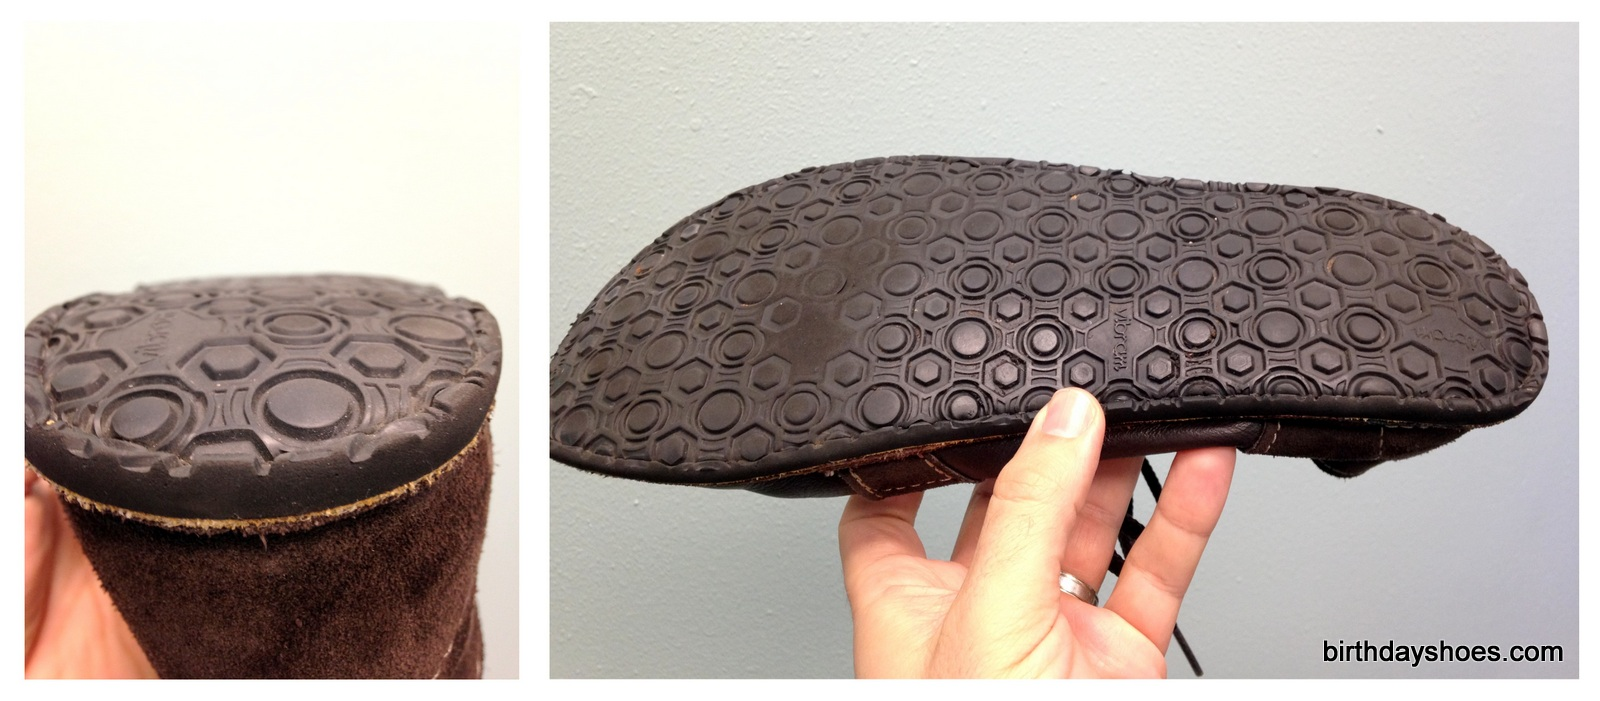 The sole holds up well to walking (left), but daily push scooter rides have worn down the forefoot (right).